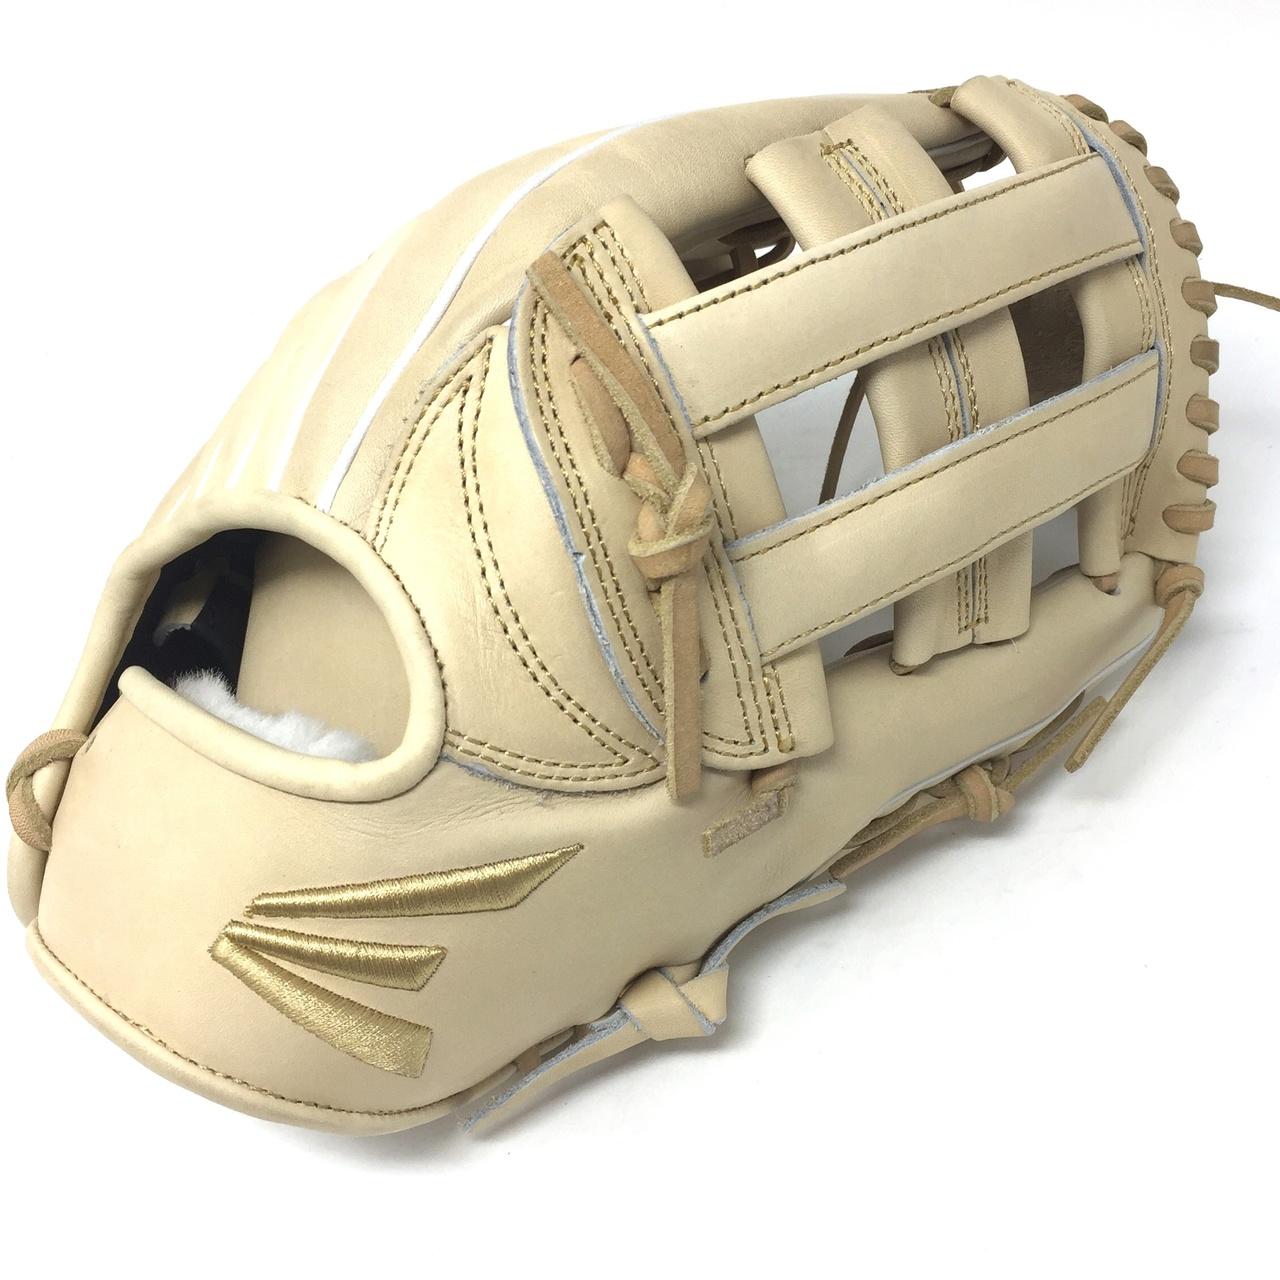 easton-small-batch-34-baseball-glove-11-75-right-hand-throw SMB34-C33-RightHandThrow Easton 628412242278 <span>Eastons Small Batch project focuses on ball glove development using only